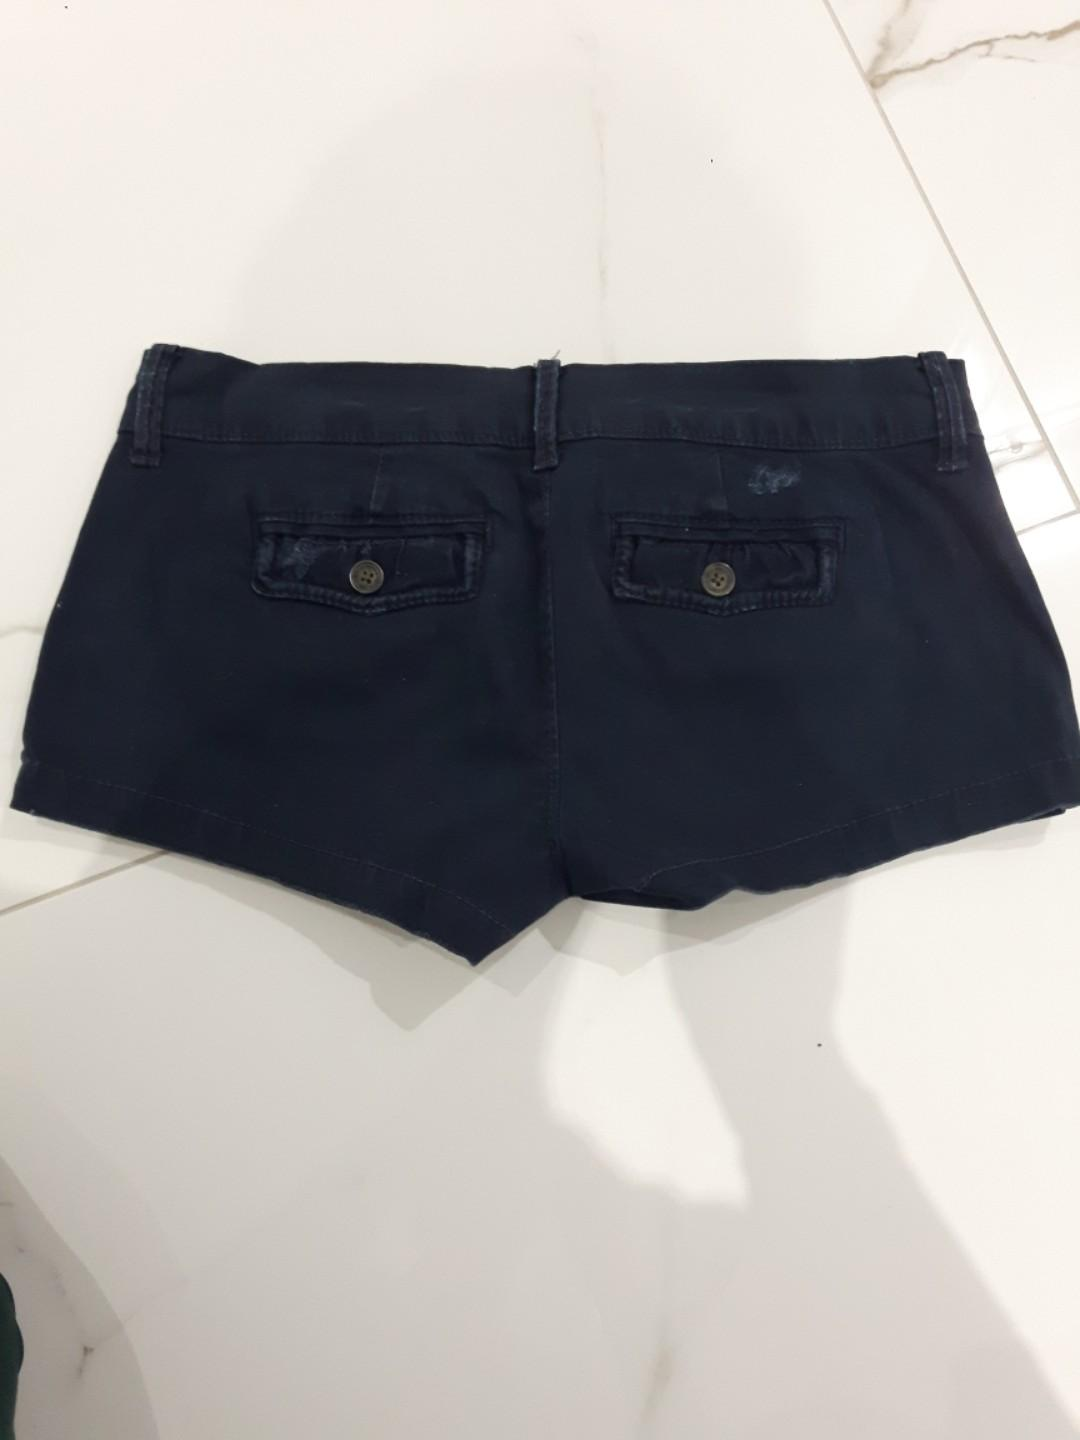 Abercrombie, Hollister, Various shorts each pair $5